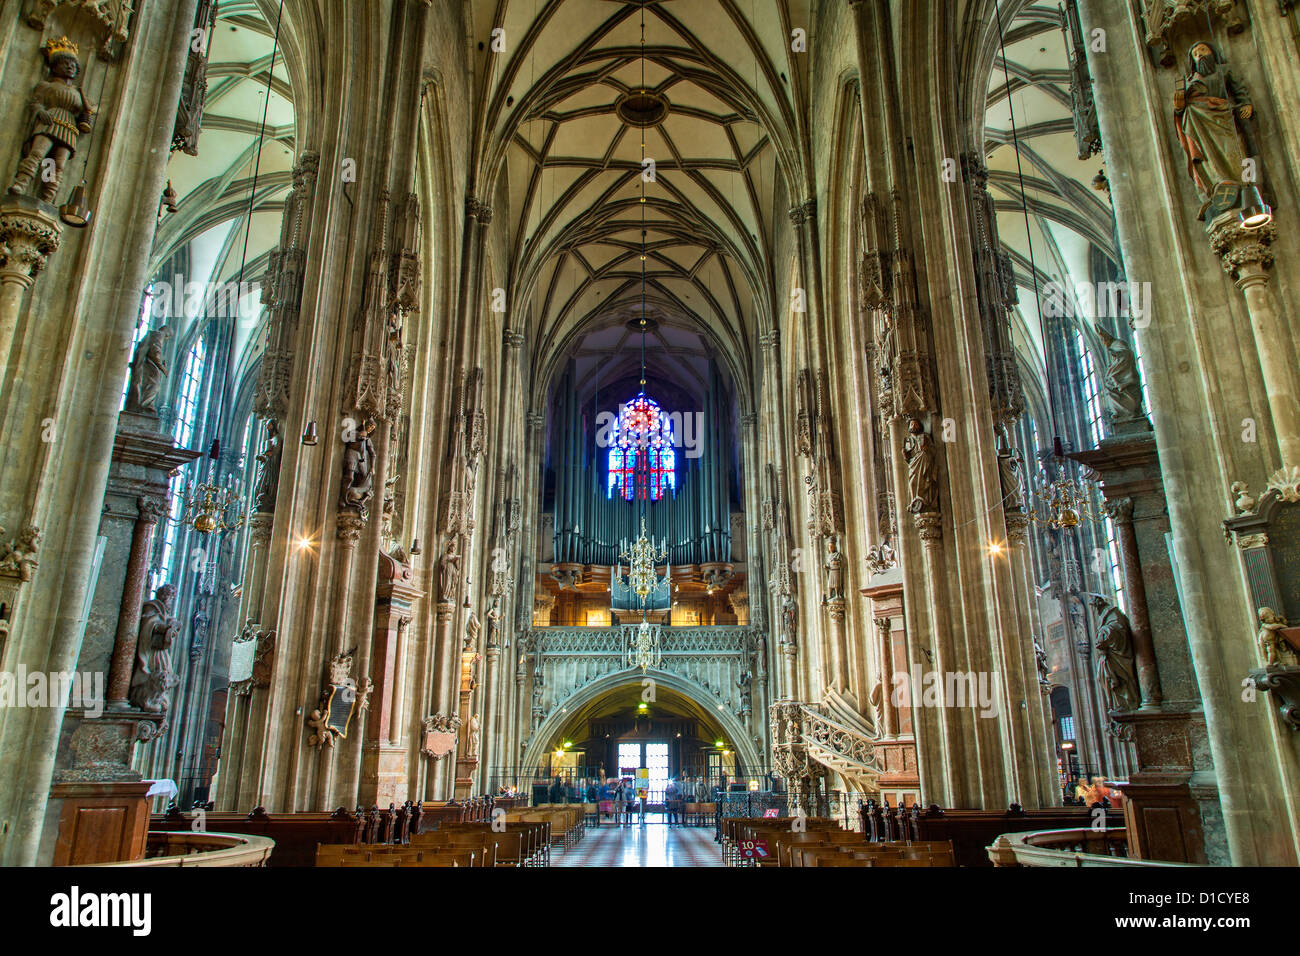 Austria, Vienna, St Stephen's Cathedral - Stock Image